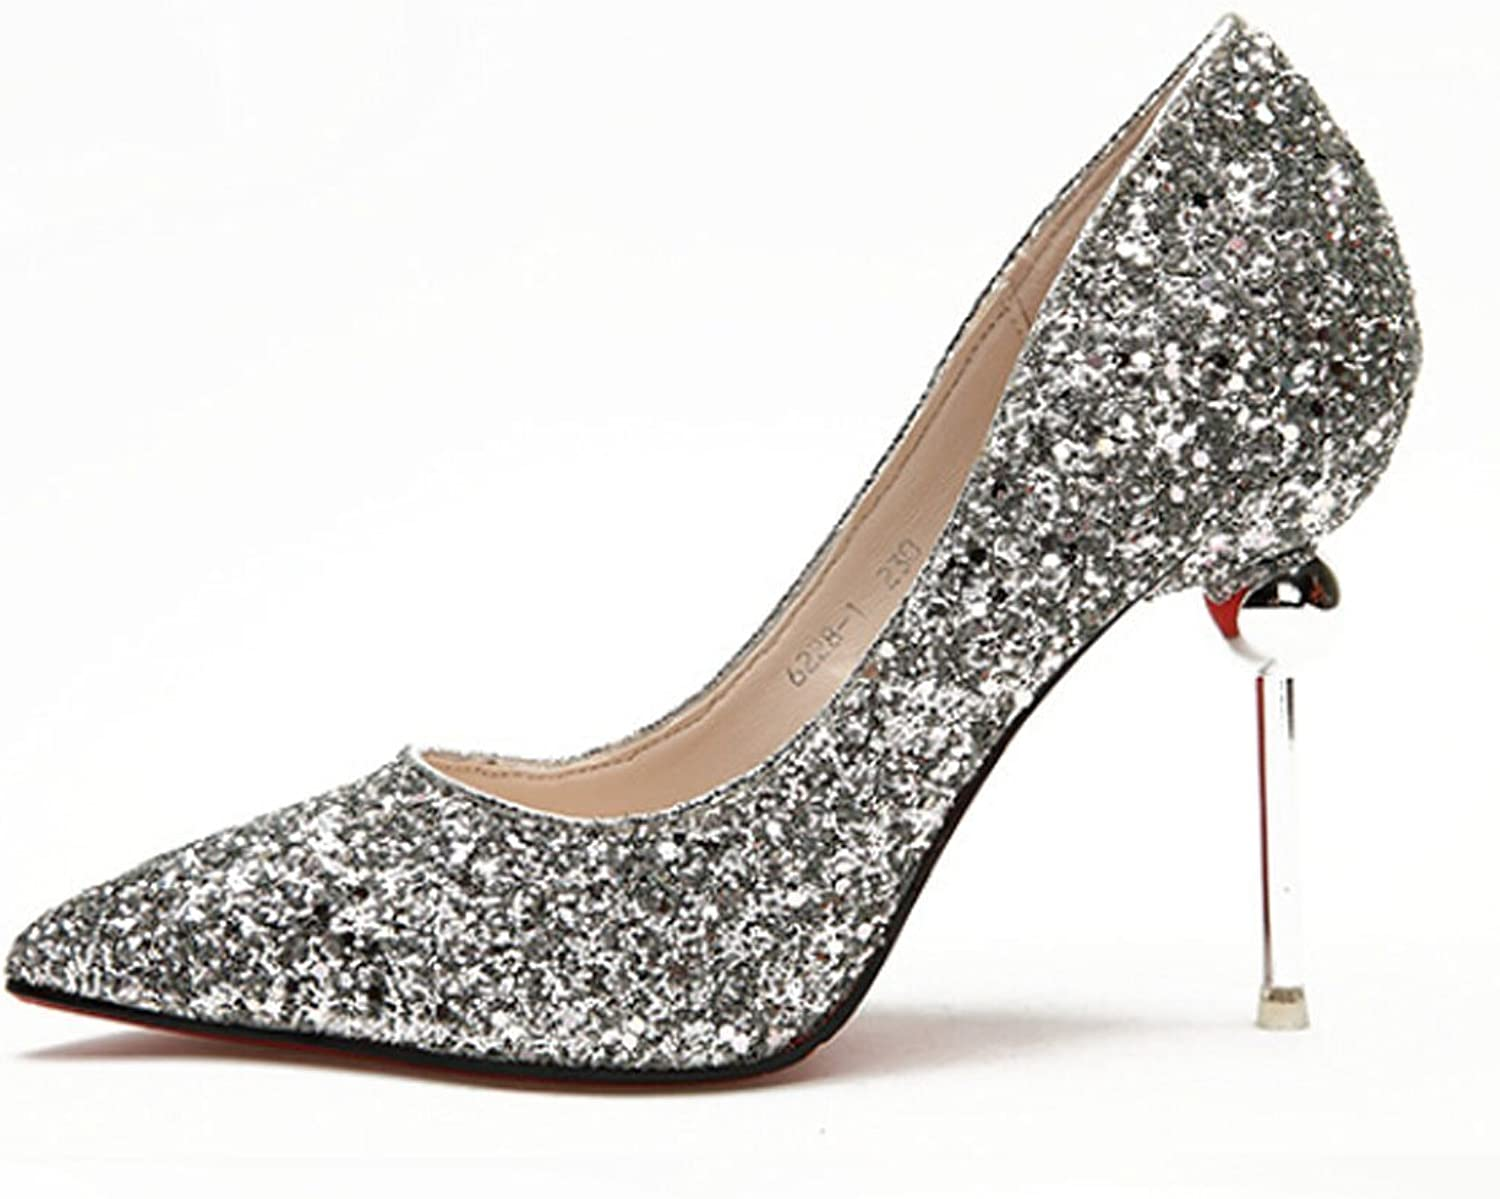 Sothingoodly Pretty Heels Sexy Women Pumps High Heels shoes Wedding Pumps Bling Bling